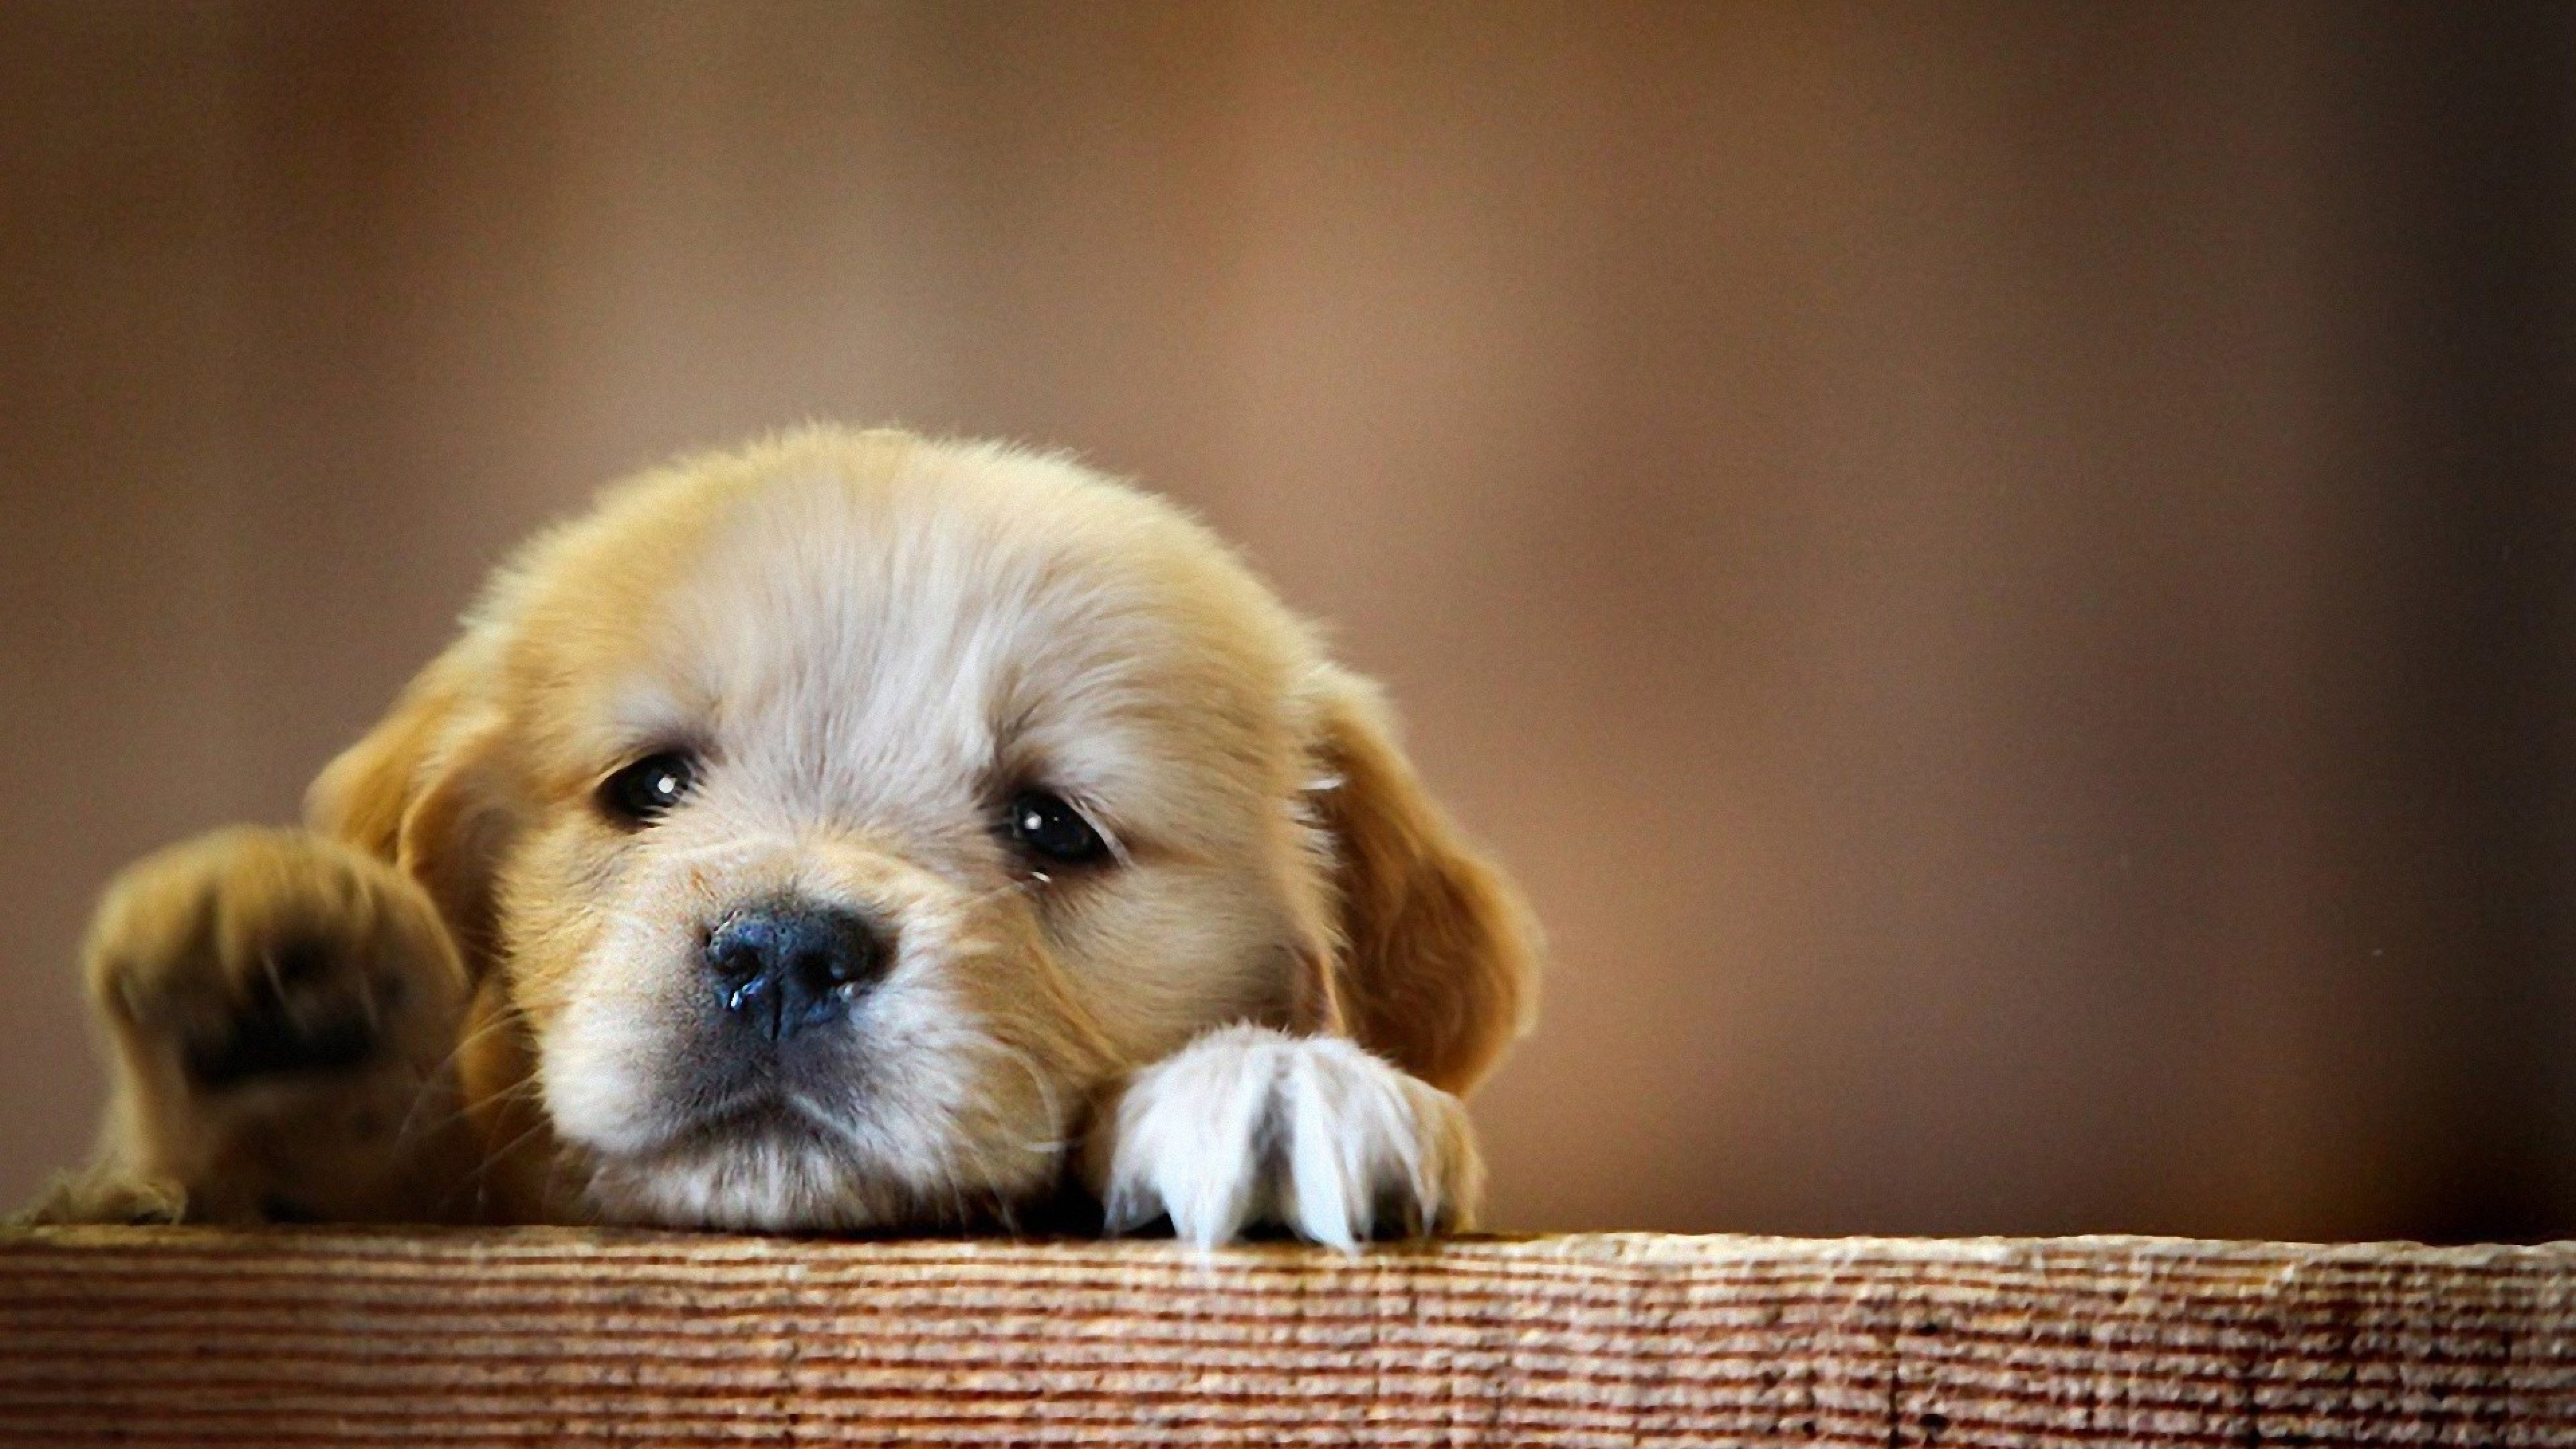 Puppy Snout Dog 1366x768 Resolution